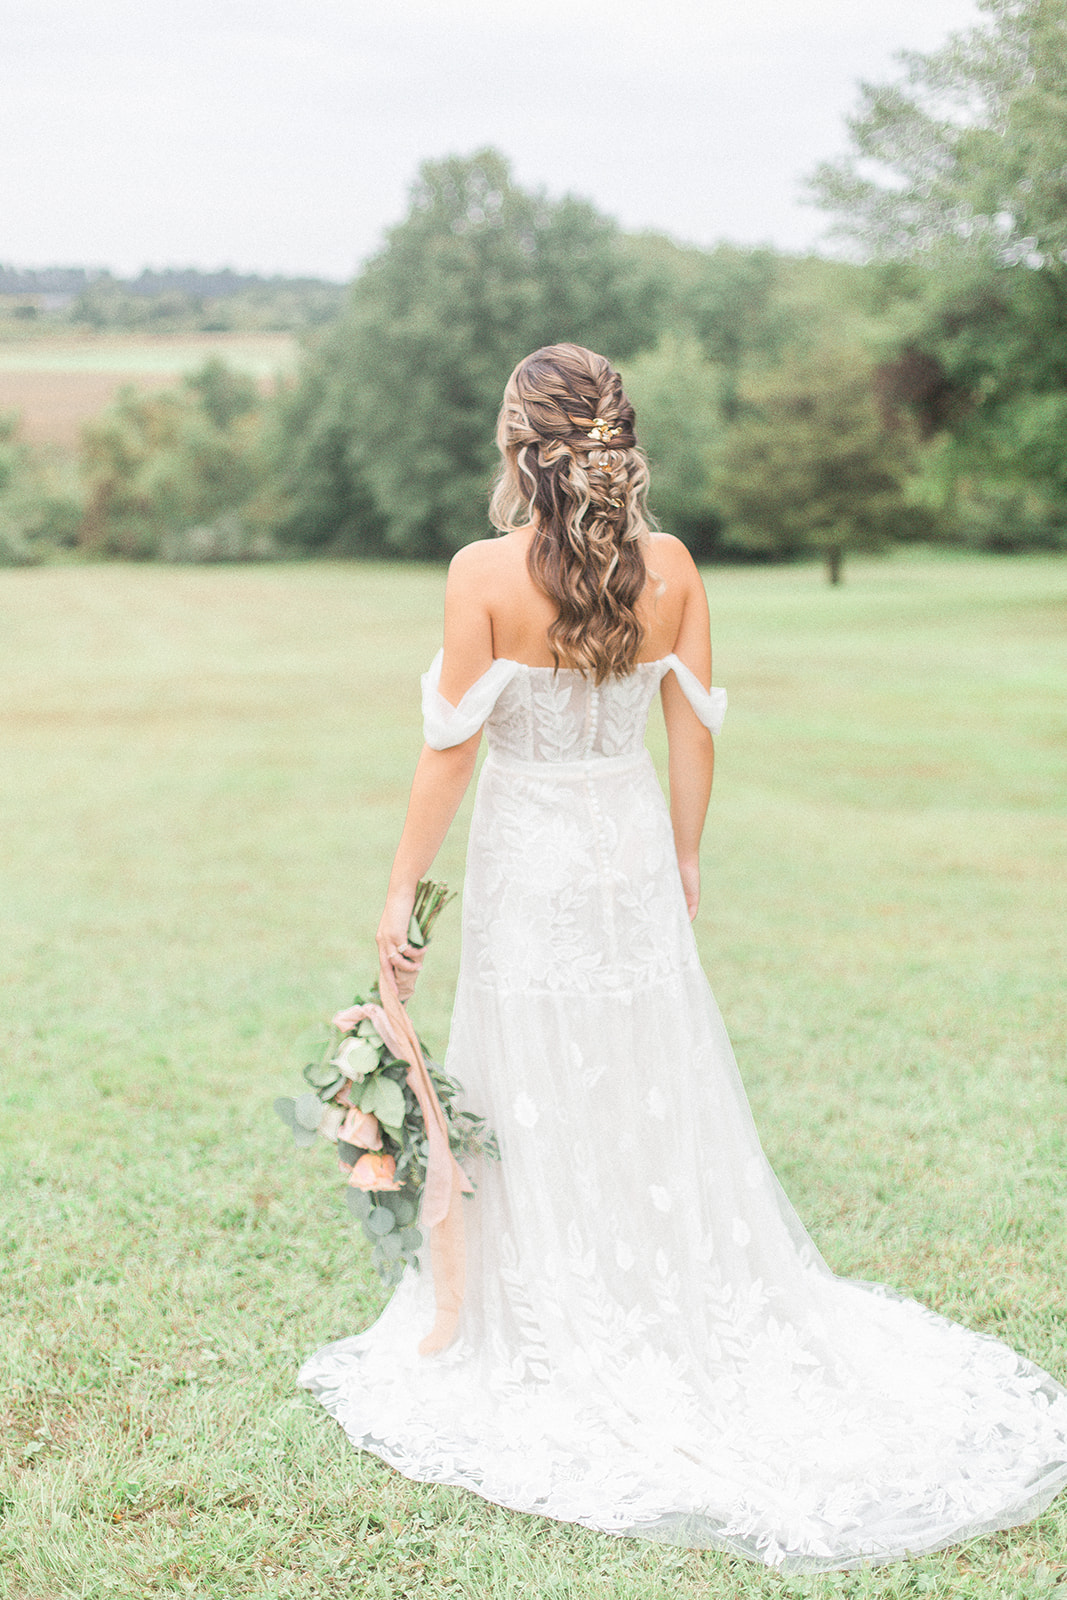 Dreamy Autumn Inspired Wedding Inspiration in New Jersey as photographed by Kevin & Aly Photography